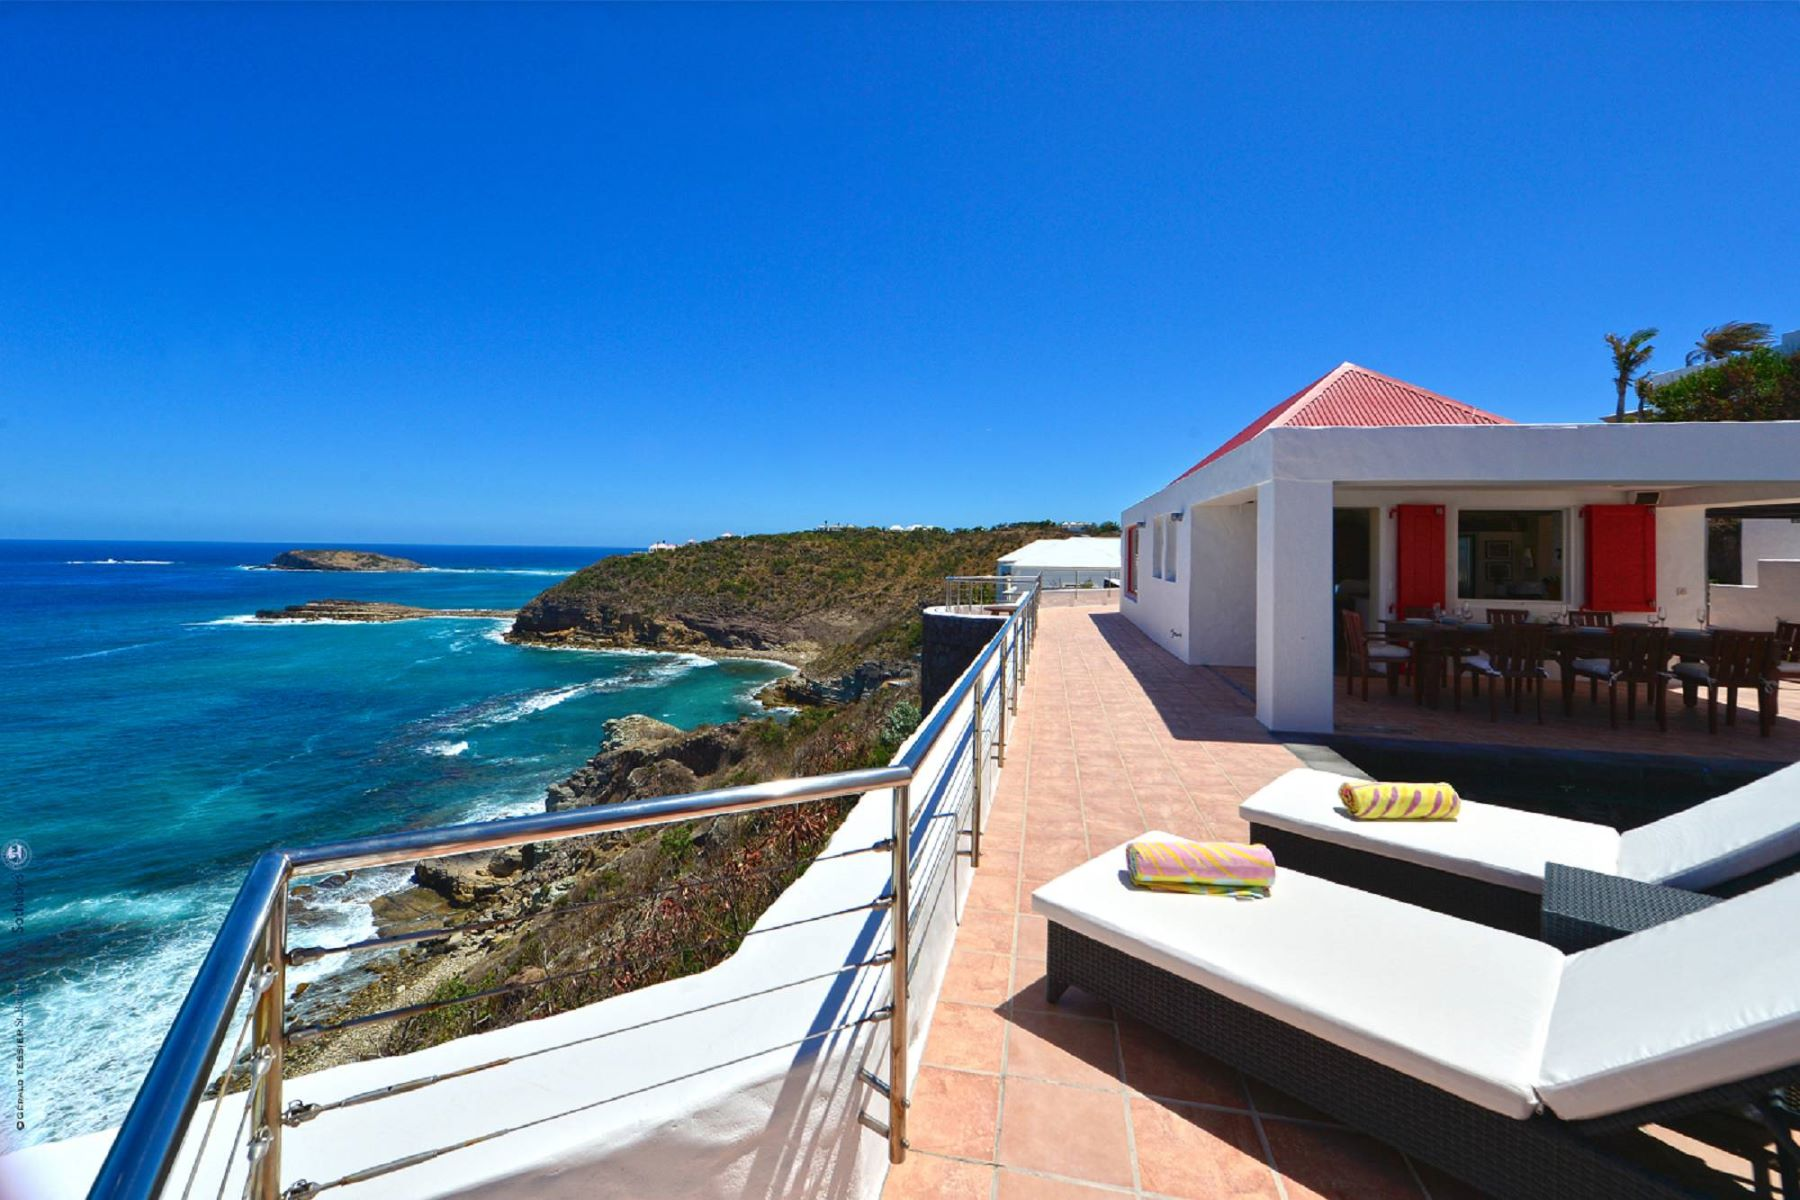 Single Family Homes for Sale at Villa Henri Bay Pointe Milou Other St. Barthelemy, Cities In St. Barthelemy 97133 St. Barthelemy